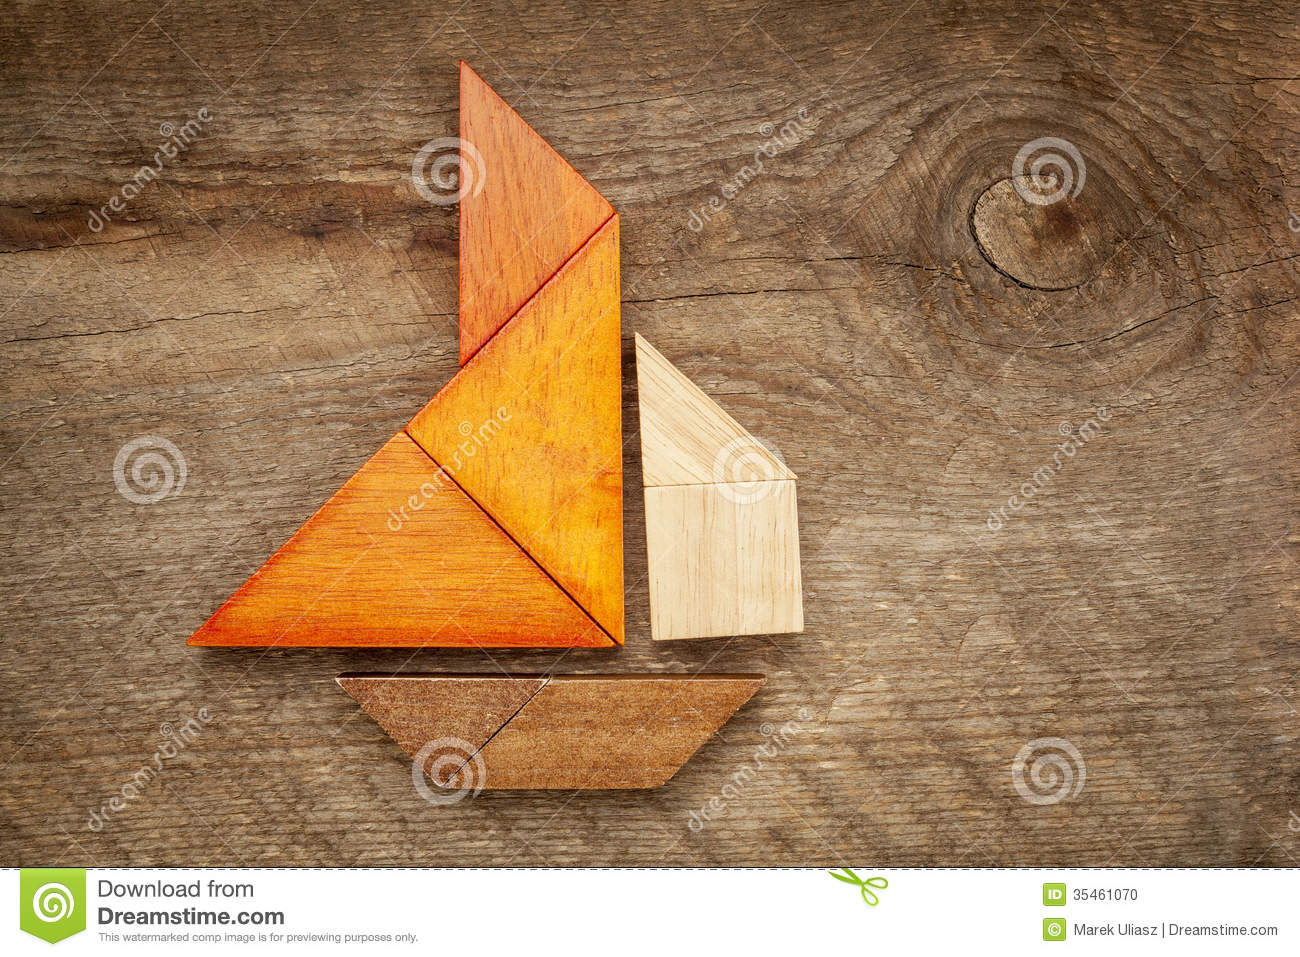 Abstract Sailboat From Tangram Puzzle Stock Photo - Image: 35461070